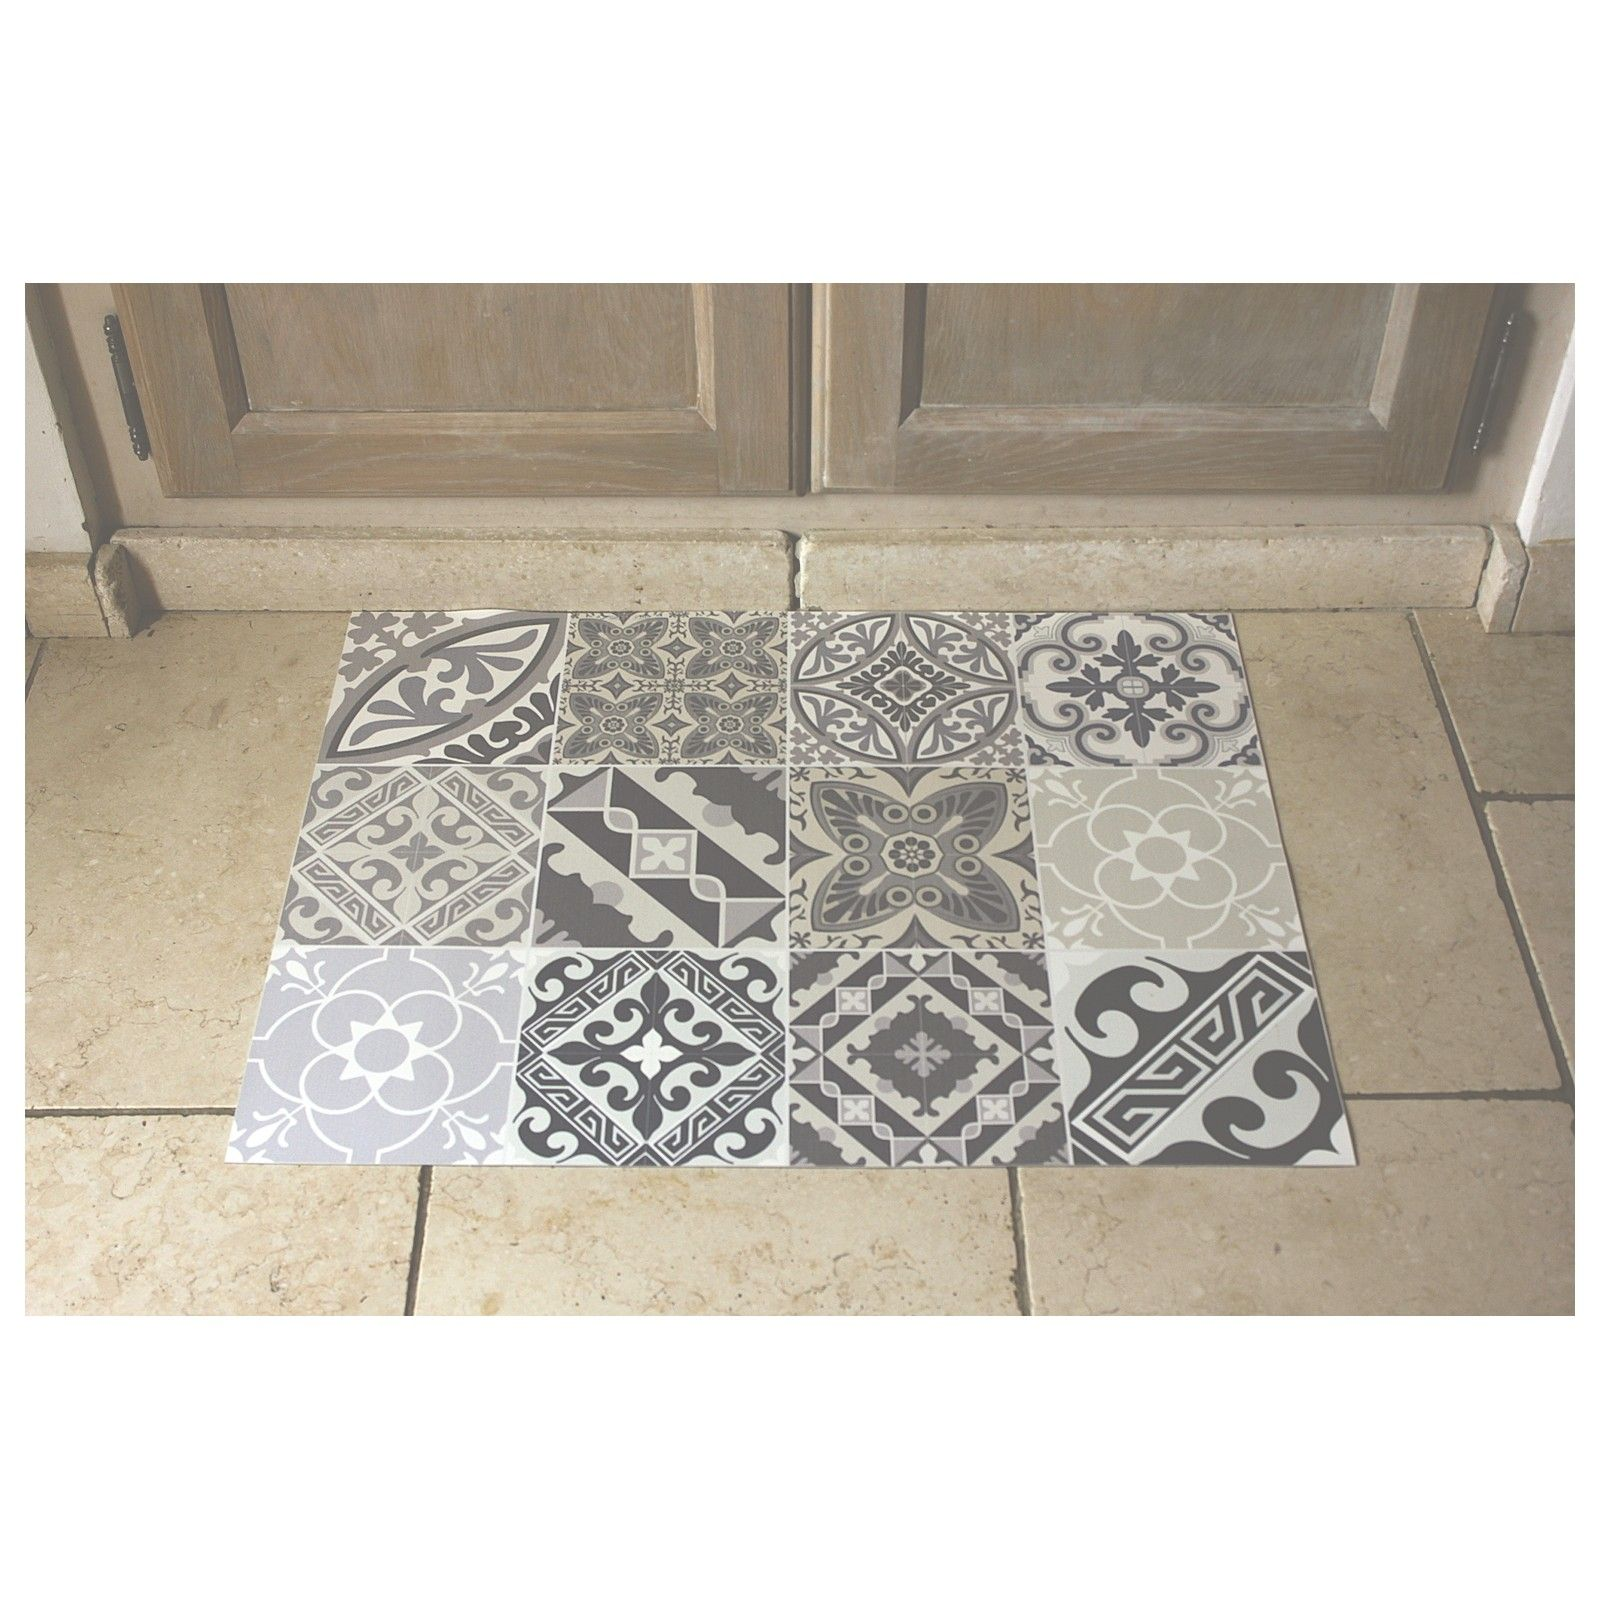 Tapis Lino Carreaux De Ciment Best My Bohem Tapis De Sol Vinyle En Carreaux De Ciment